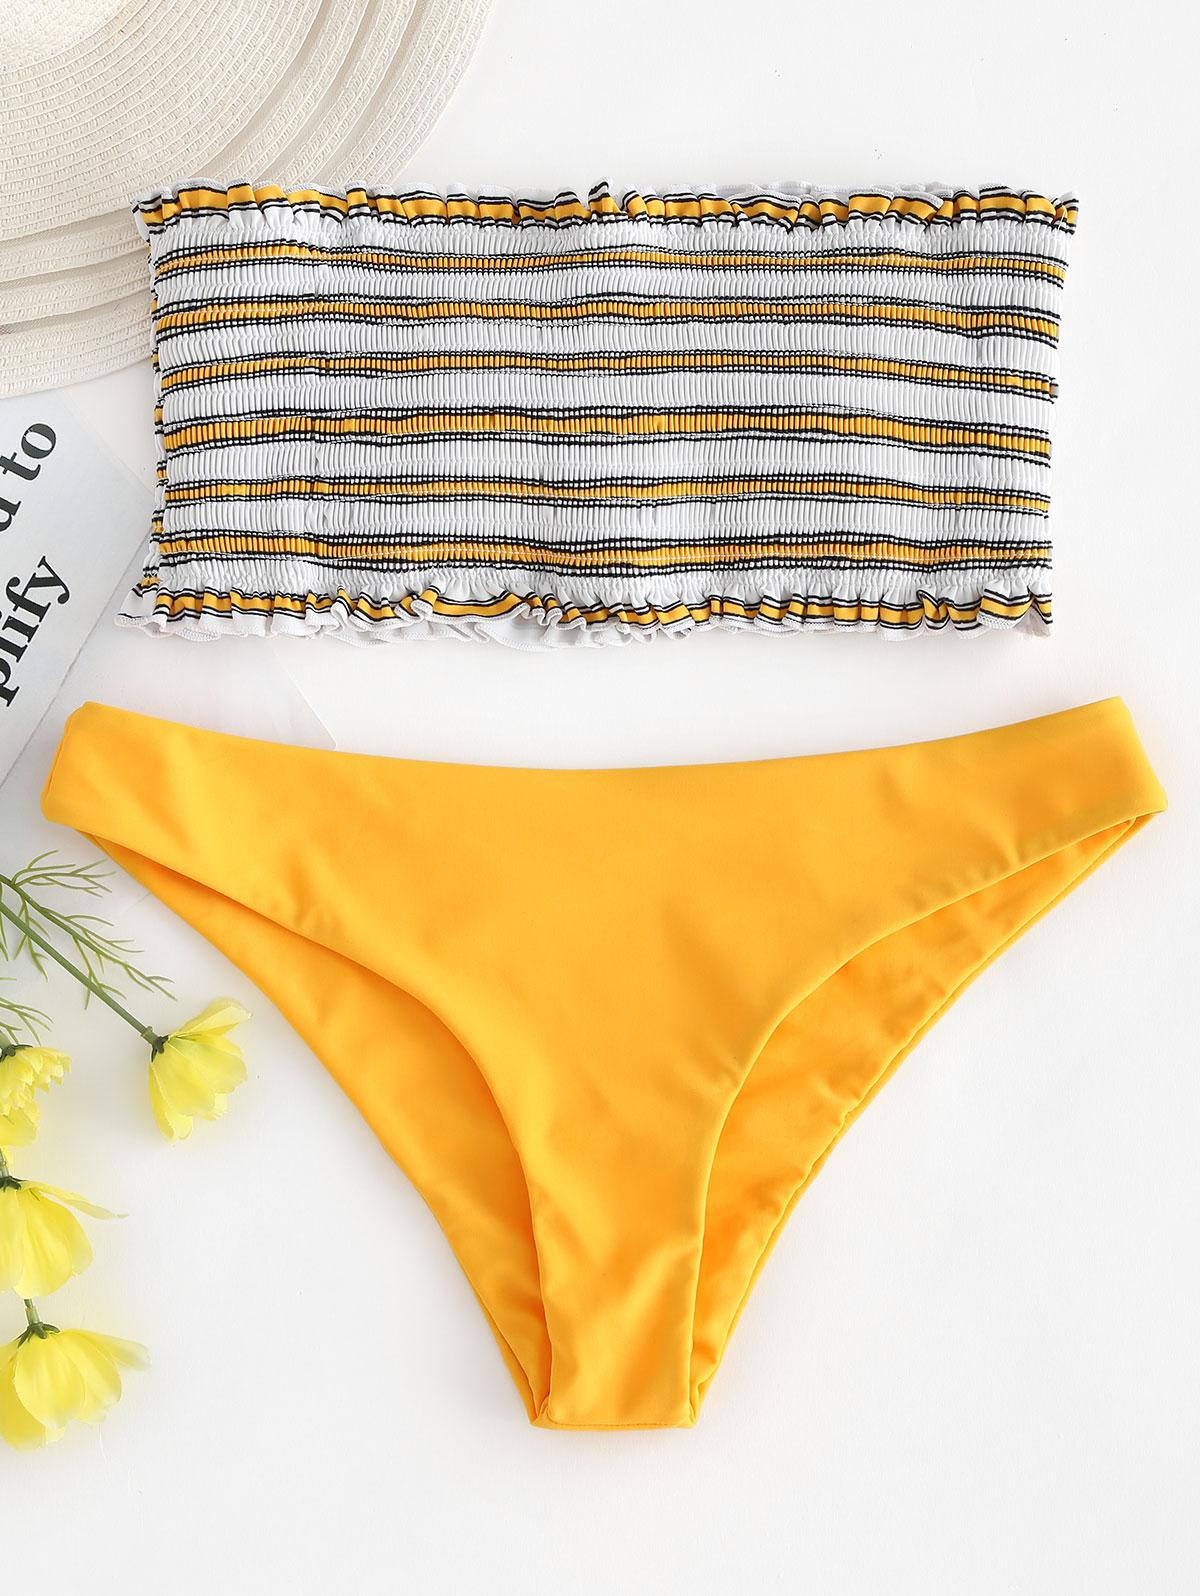 ZAFUL Stripe Smocked Bandeau Bikini Set thumbnail